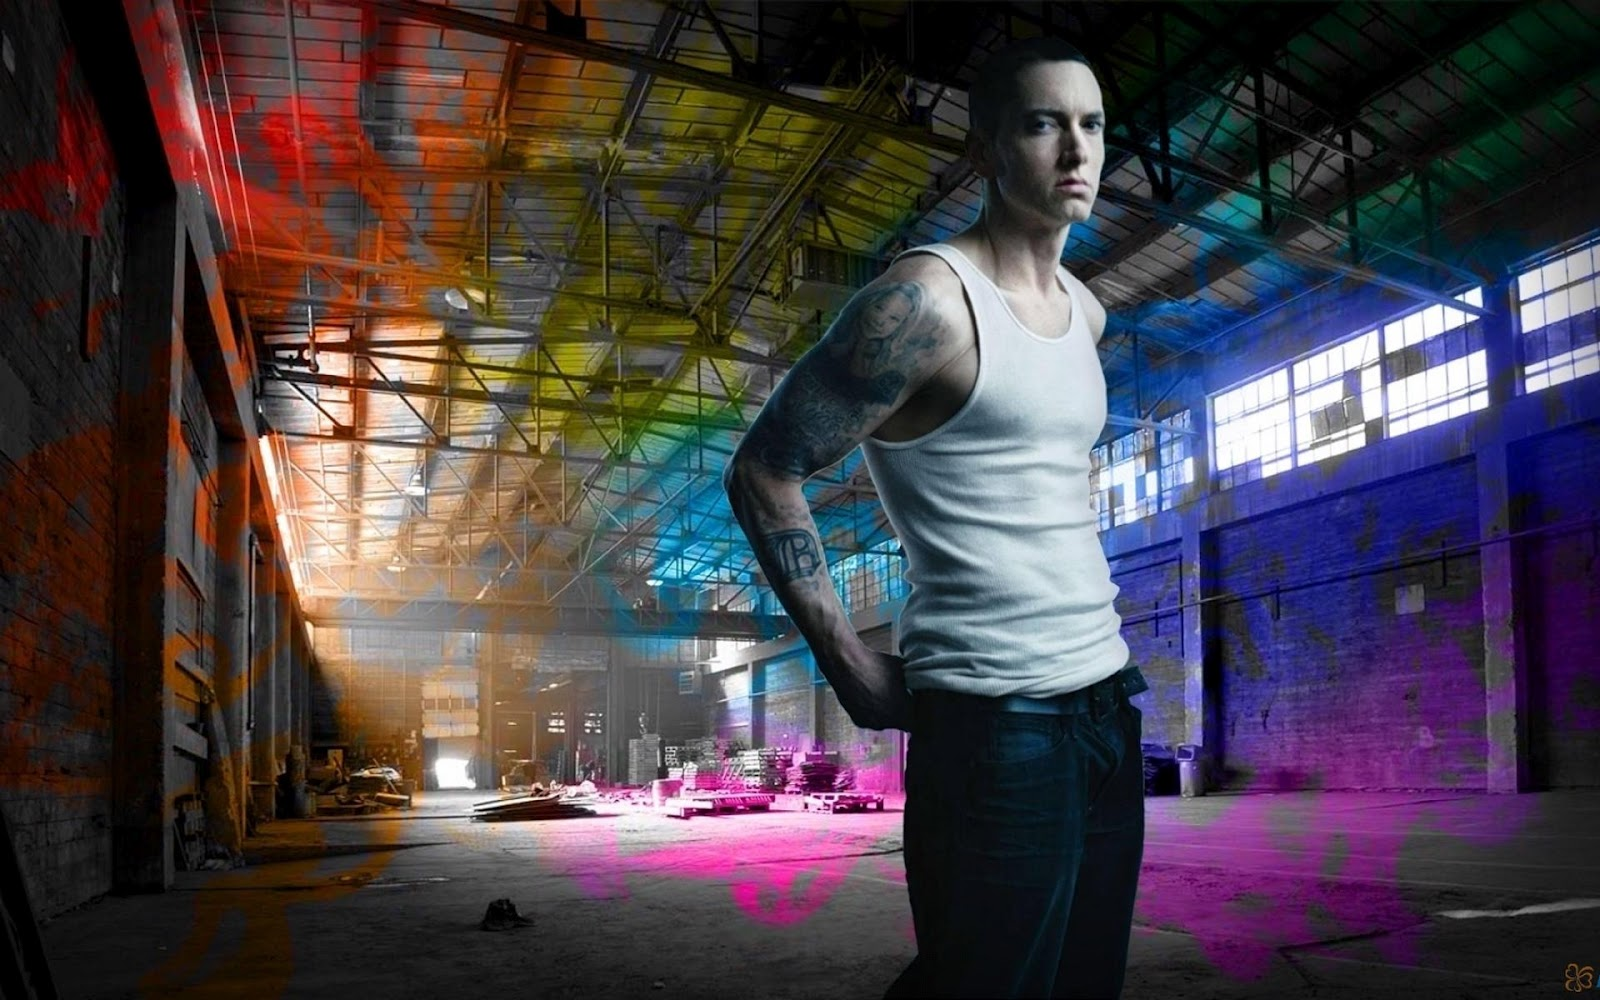 http://3.bp.blogspot.com/-WA8jblmki48/UE2aUg0Xh8I/AAAAAAAABZM/oF_-TAP_kWo/s1600/Eminem+HD+Wallpaper+2012-2013+09.jpg